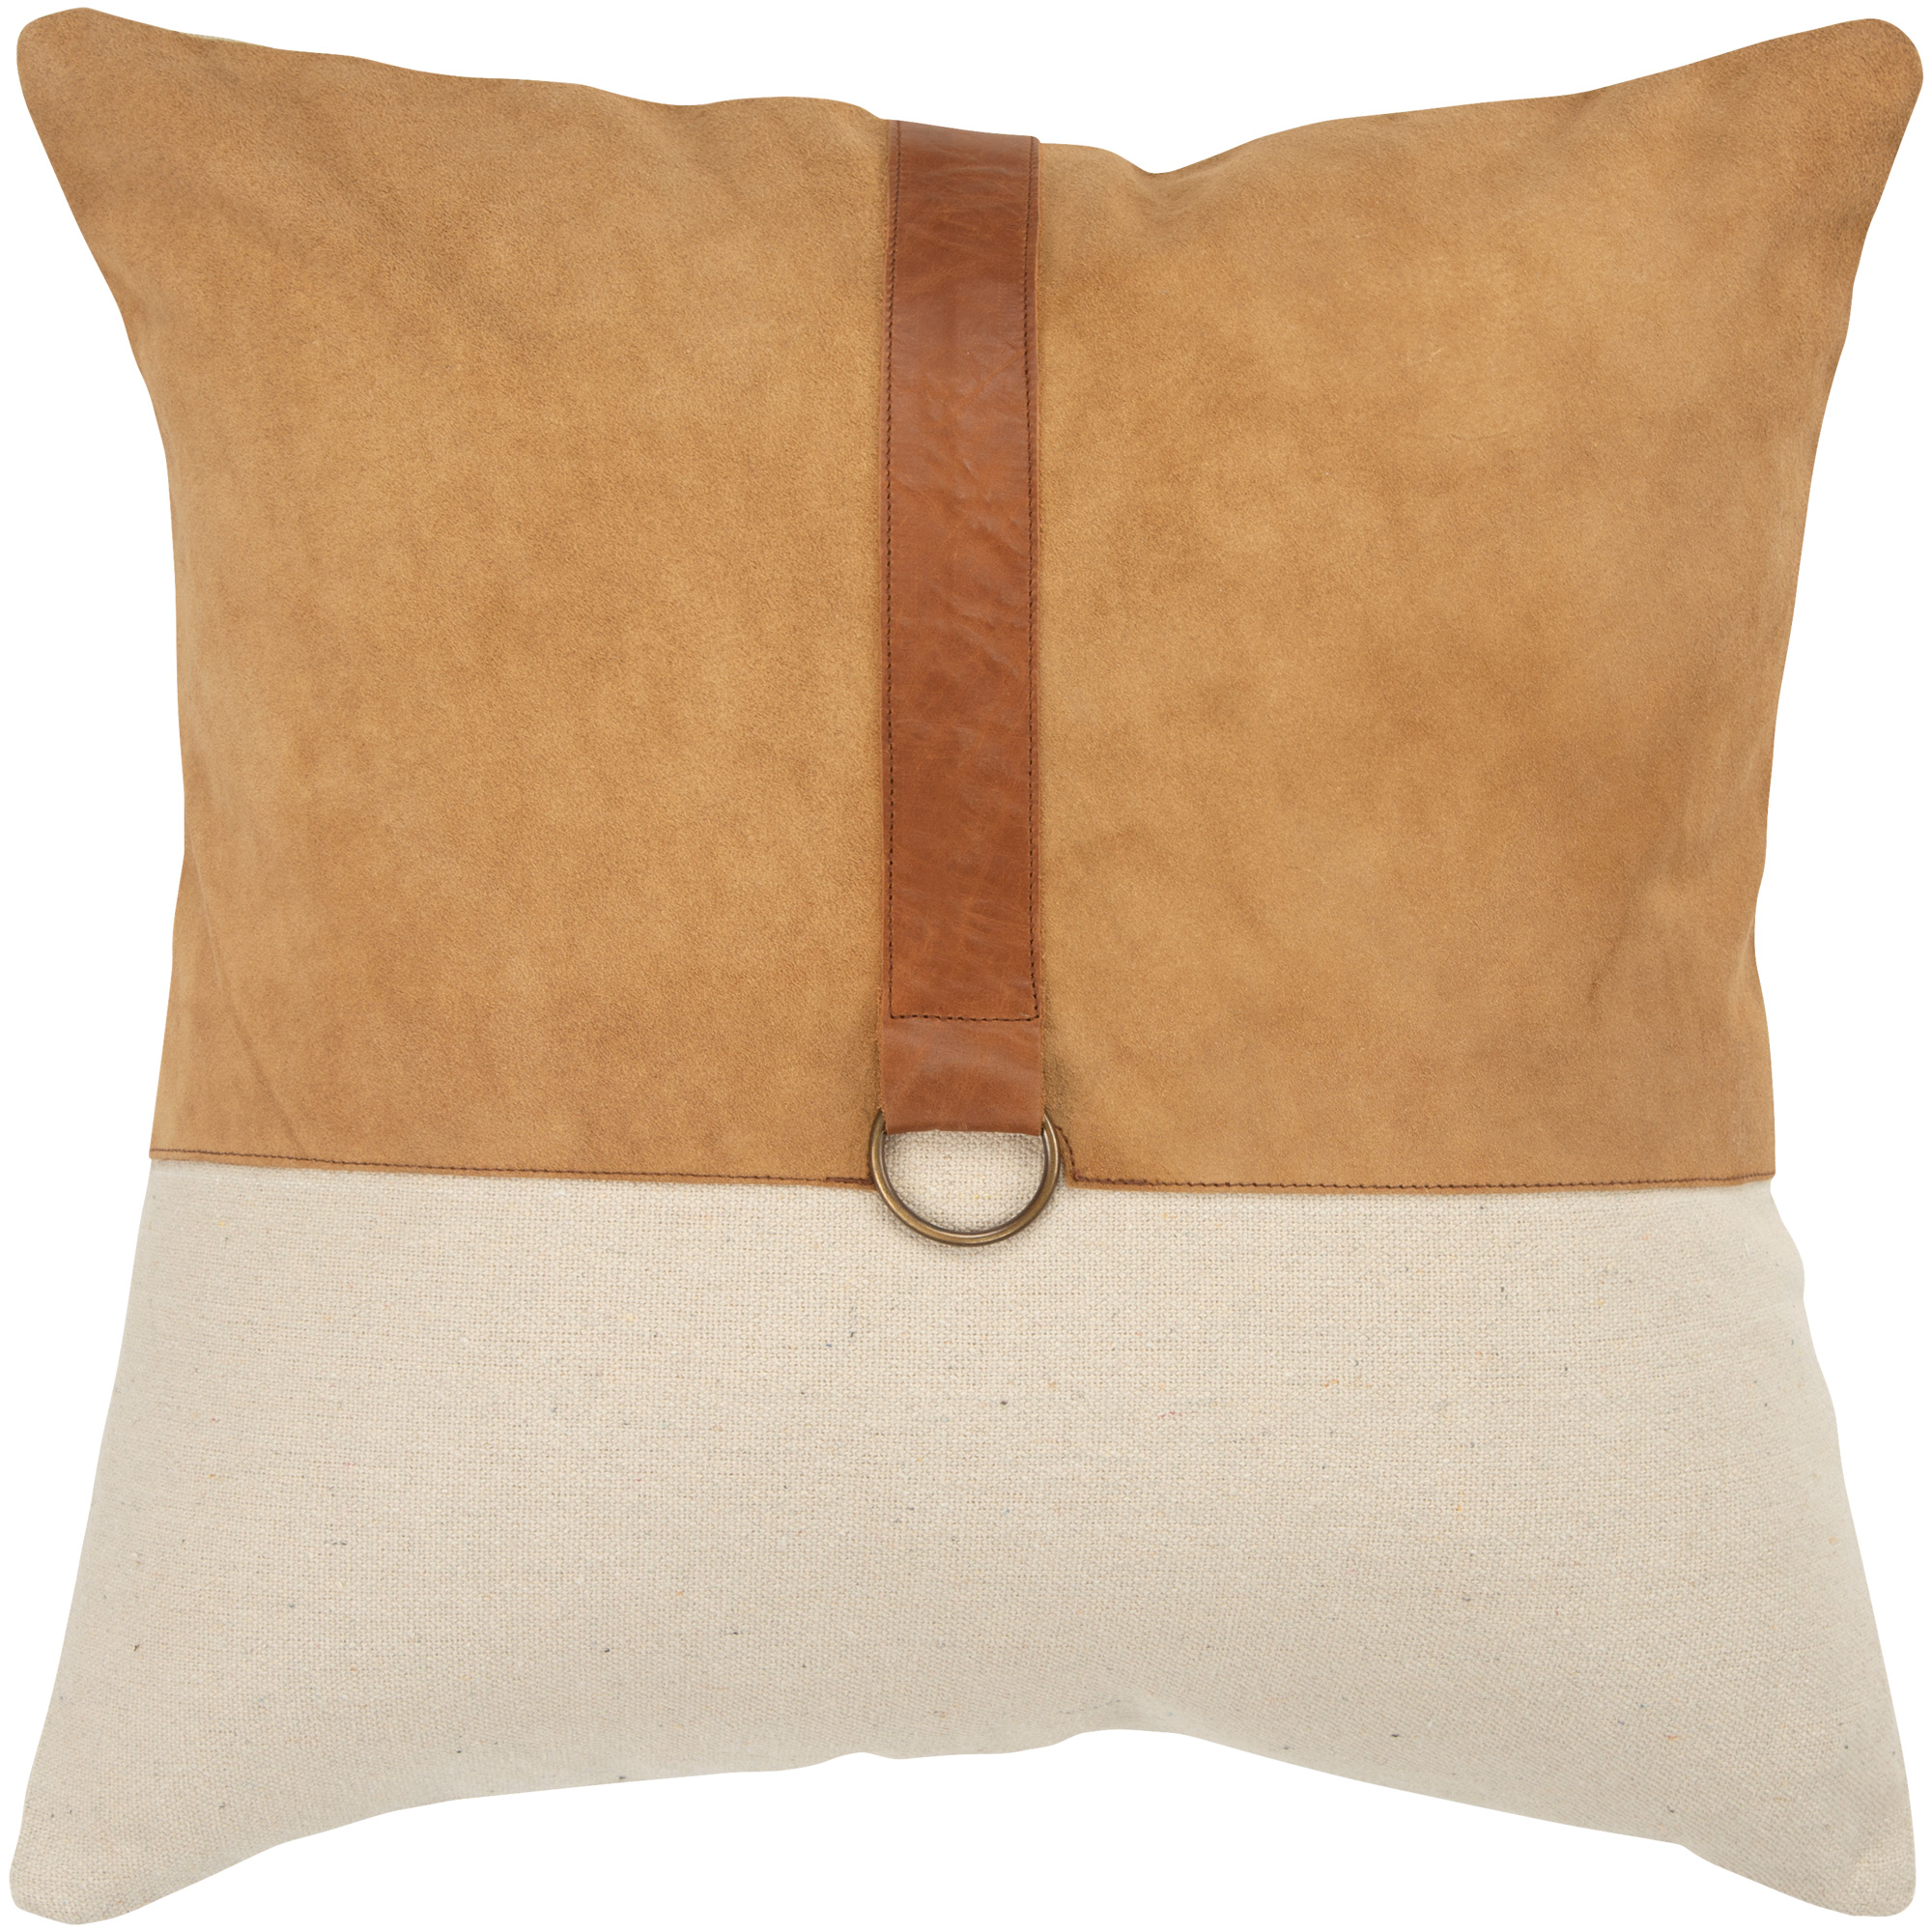 Rizzy Home | Aztec Brown Leather Strap Down Pillow